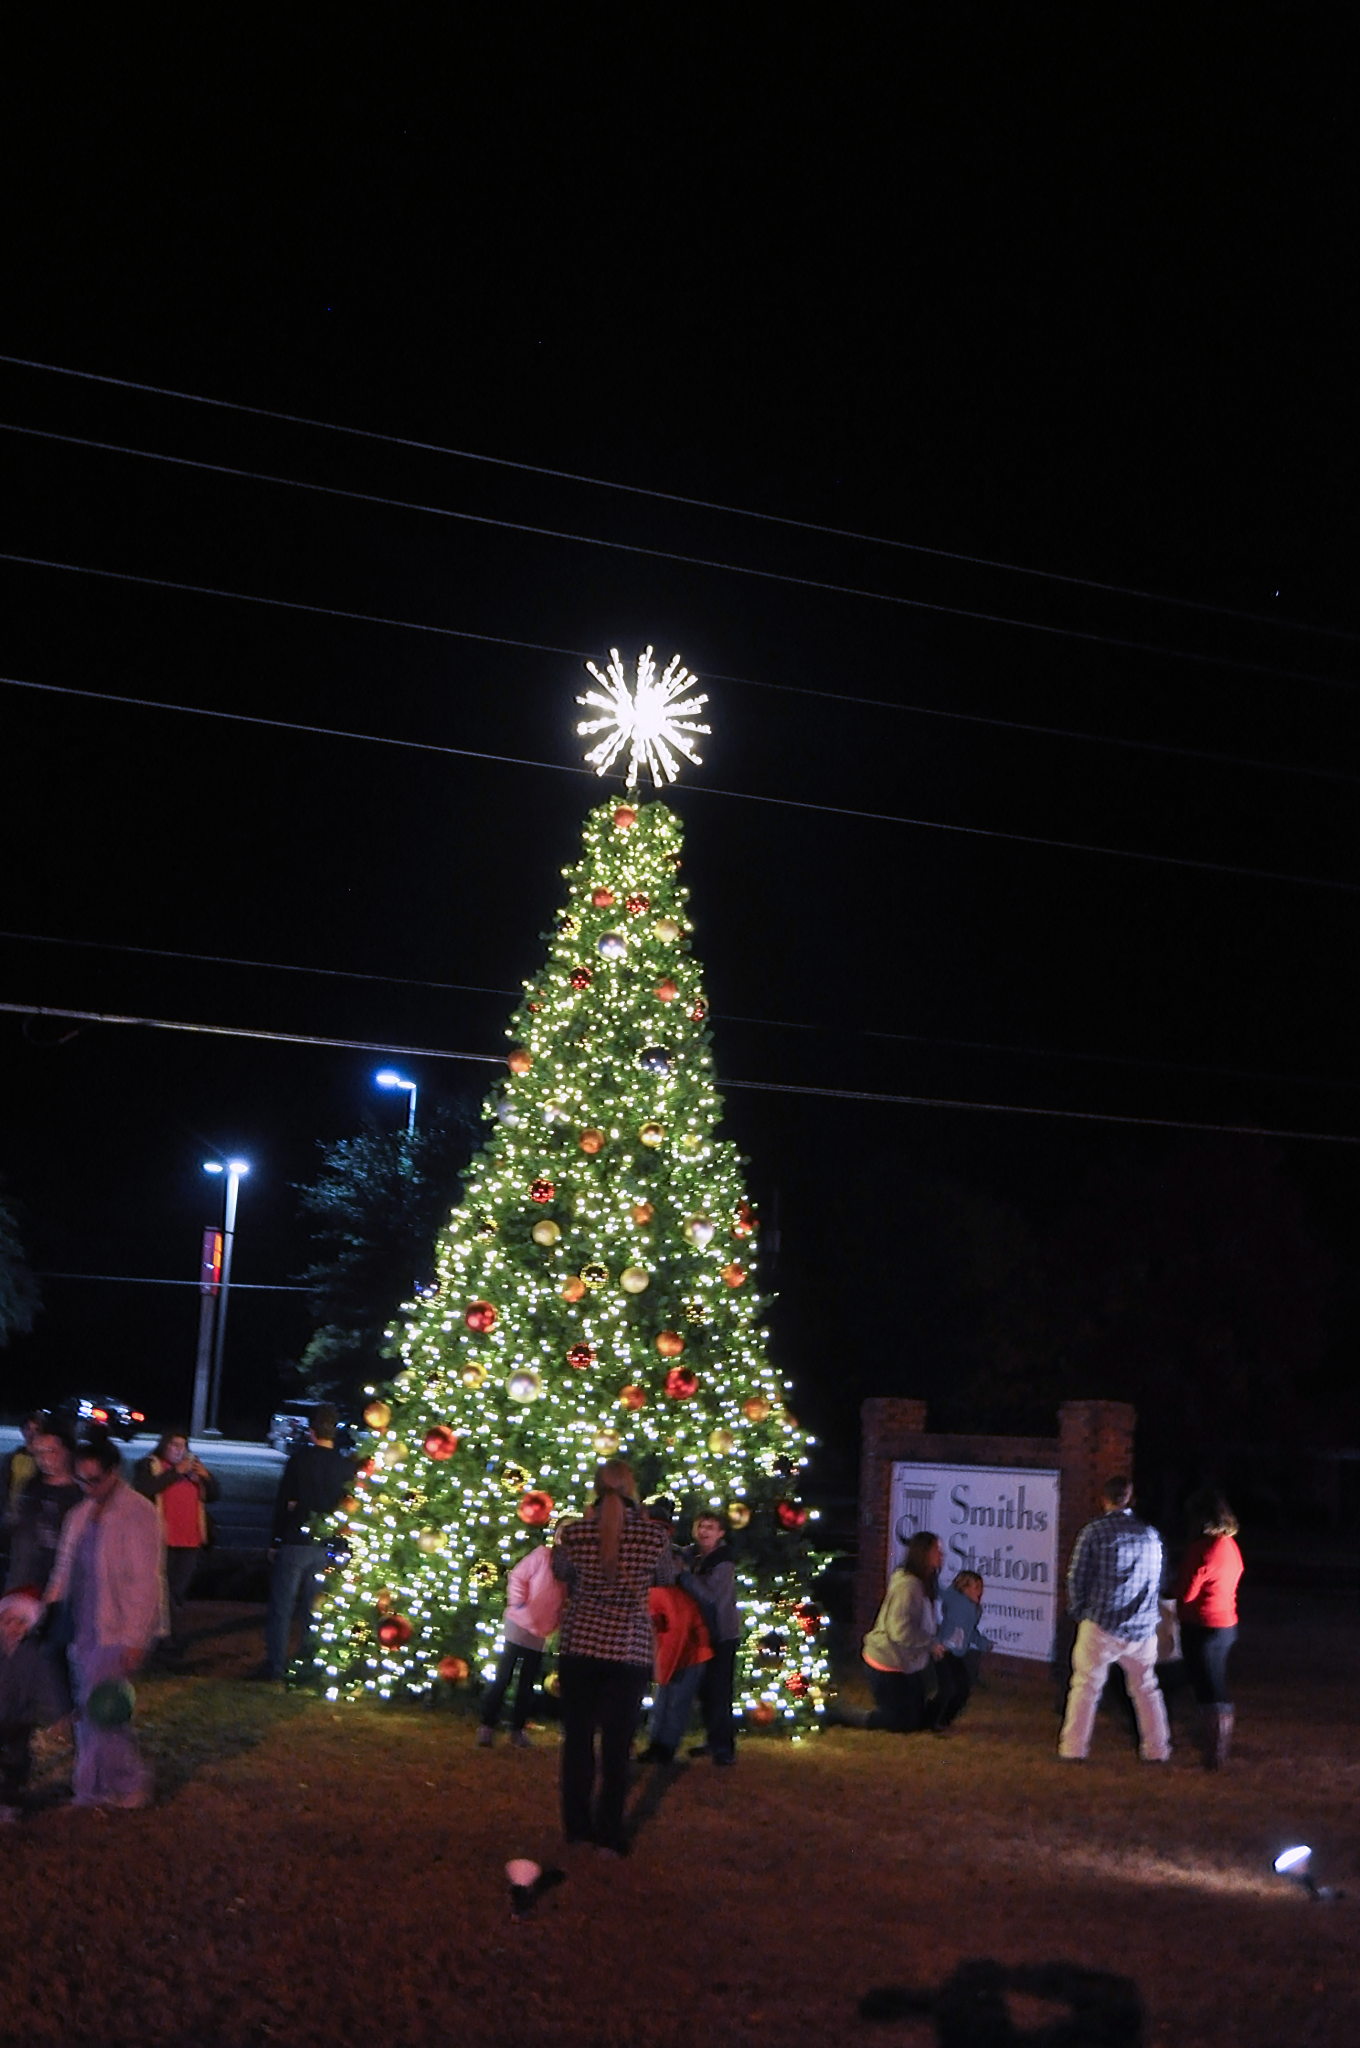 Smiths Station Christmas Tree Lighting – December 4th